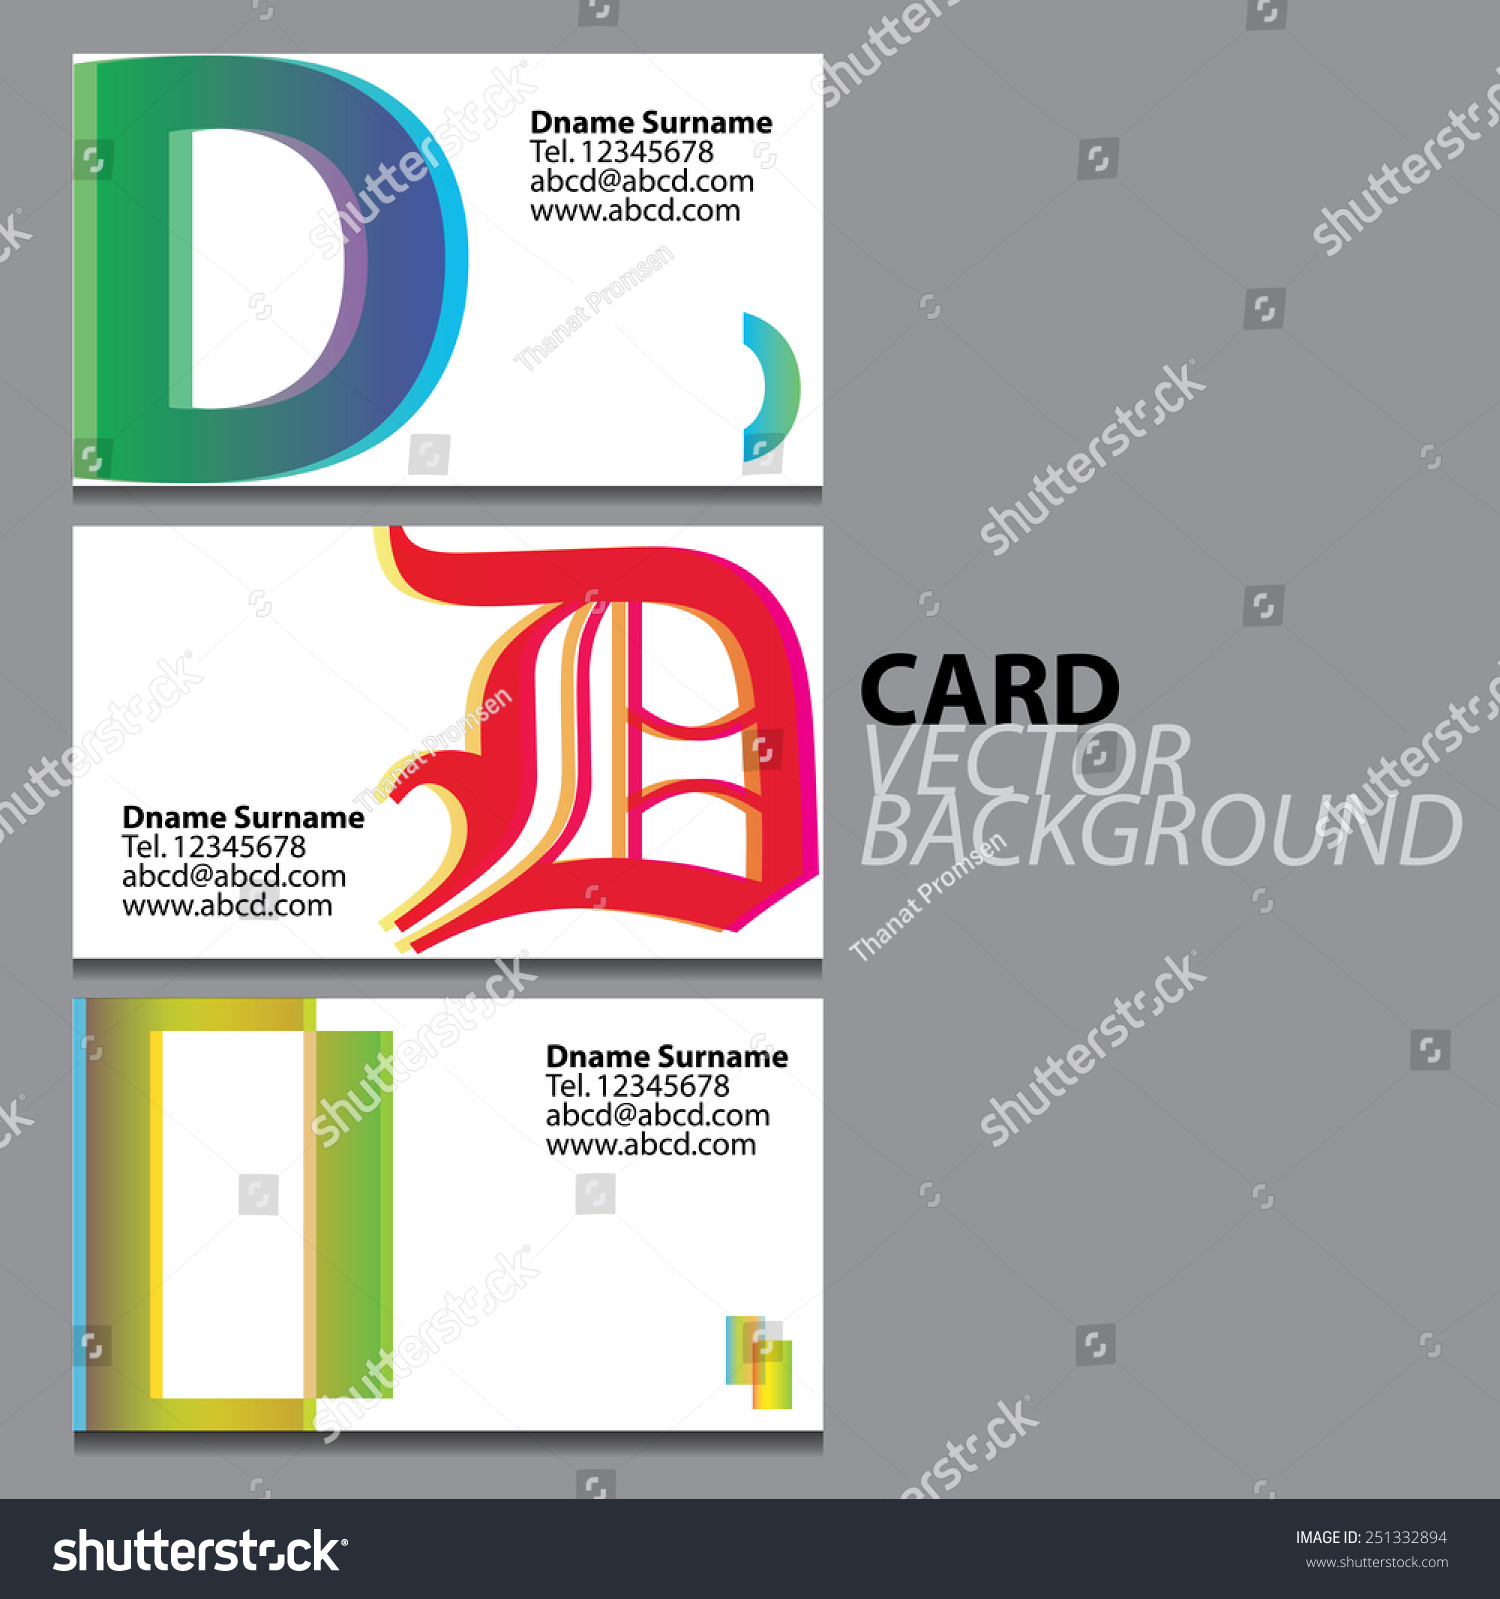 Berkeley Law Business Cards Image collections - Card Design And ...